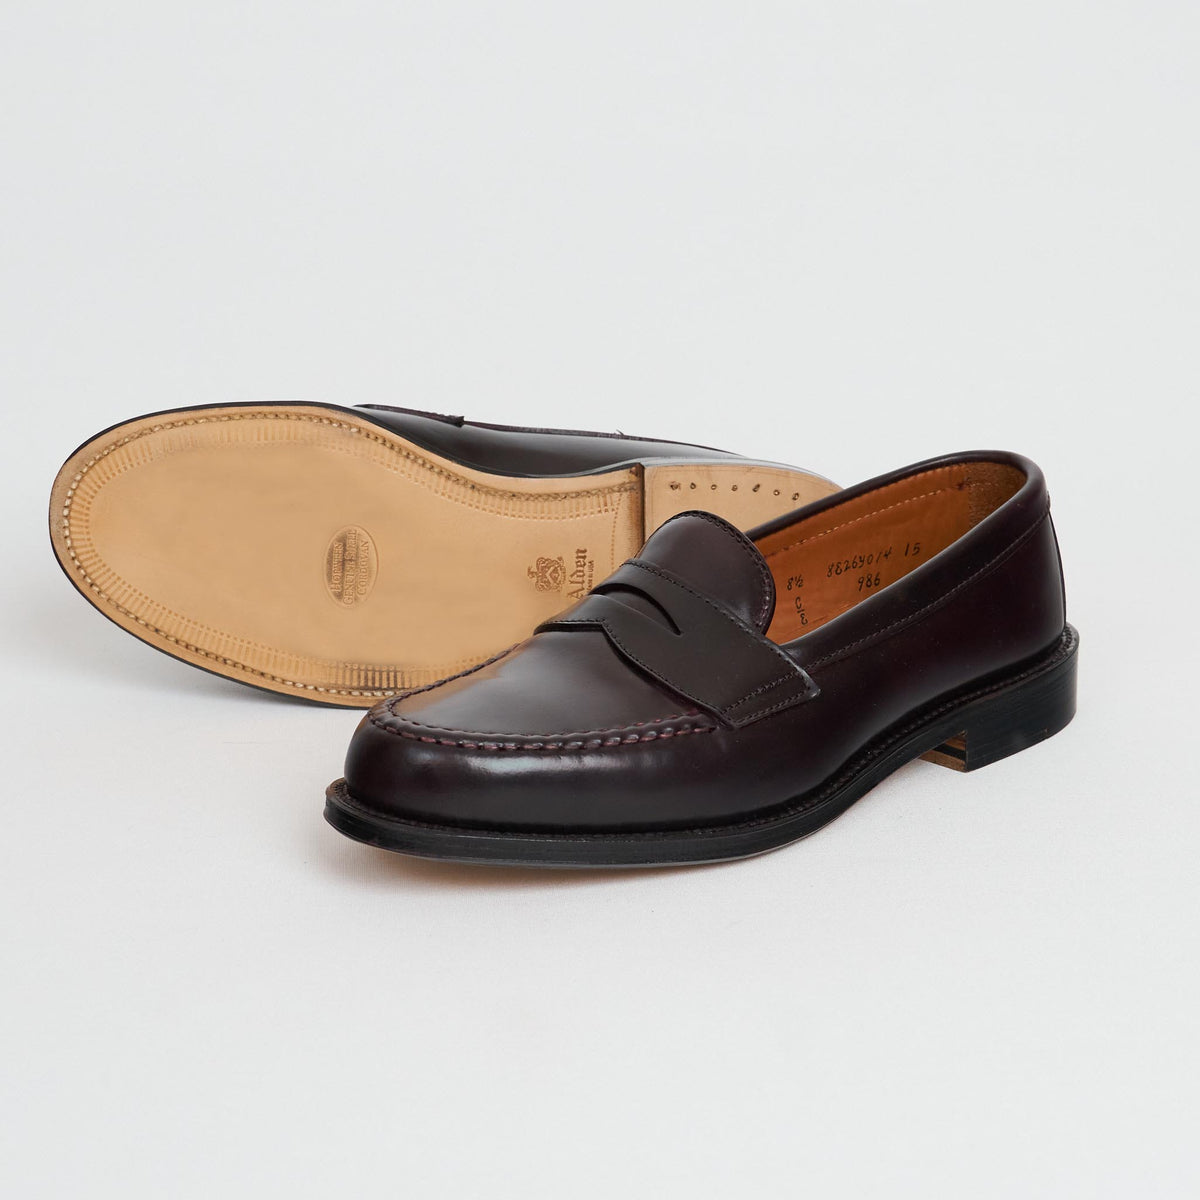 Alden Penny Loafer Shell Cordovan 986